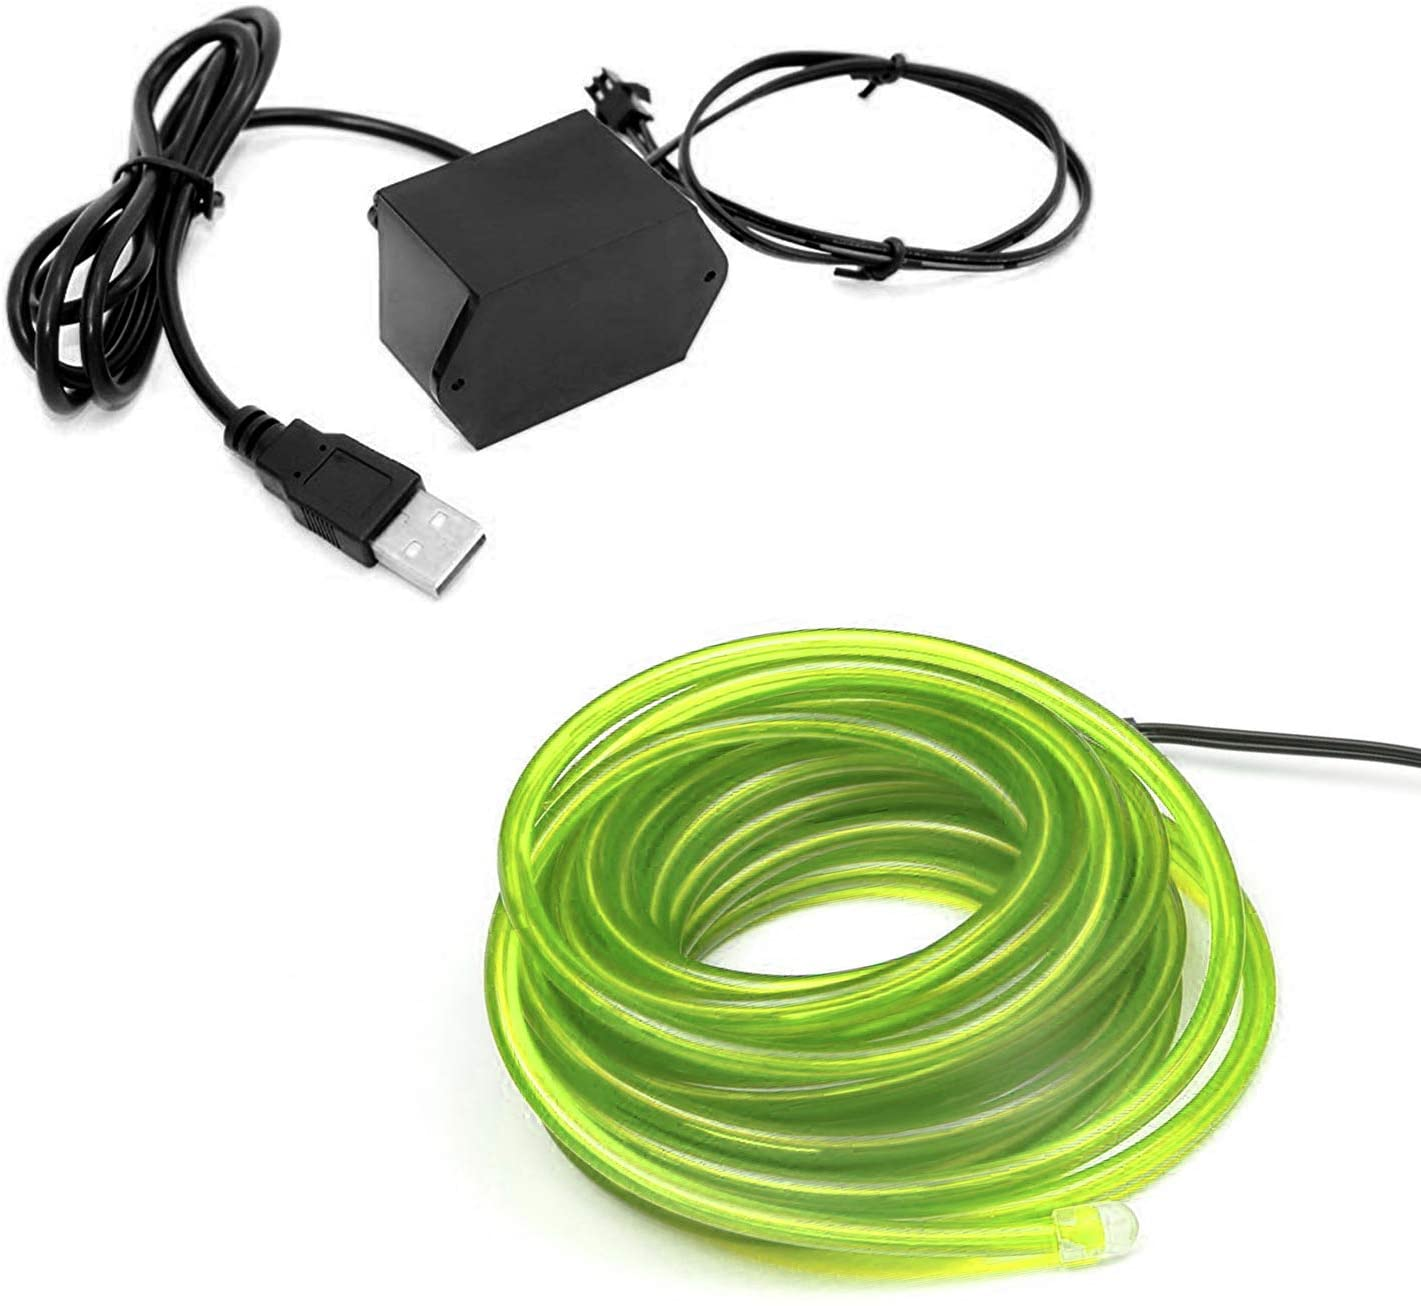 1-Pack 5m/16.4ft Lime Green Neon LED Light Glow EL Wire - 5 mm Thick - Powered by 12V USB Port - Craft Neon Wire String Light for DIY Project Costume Accessories Cosplay